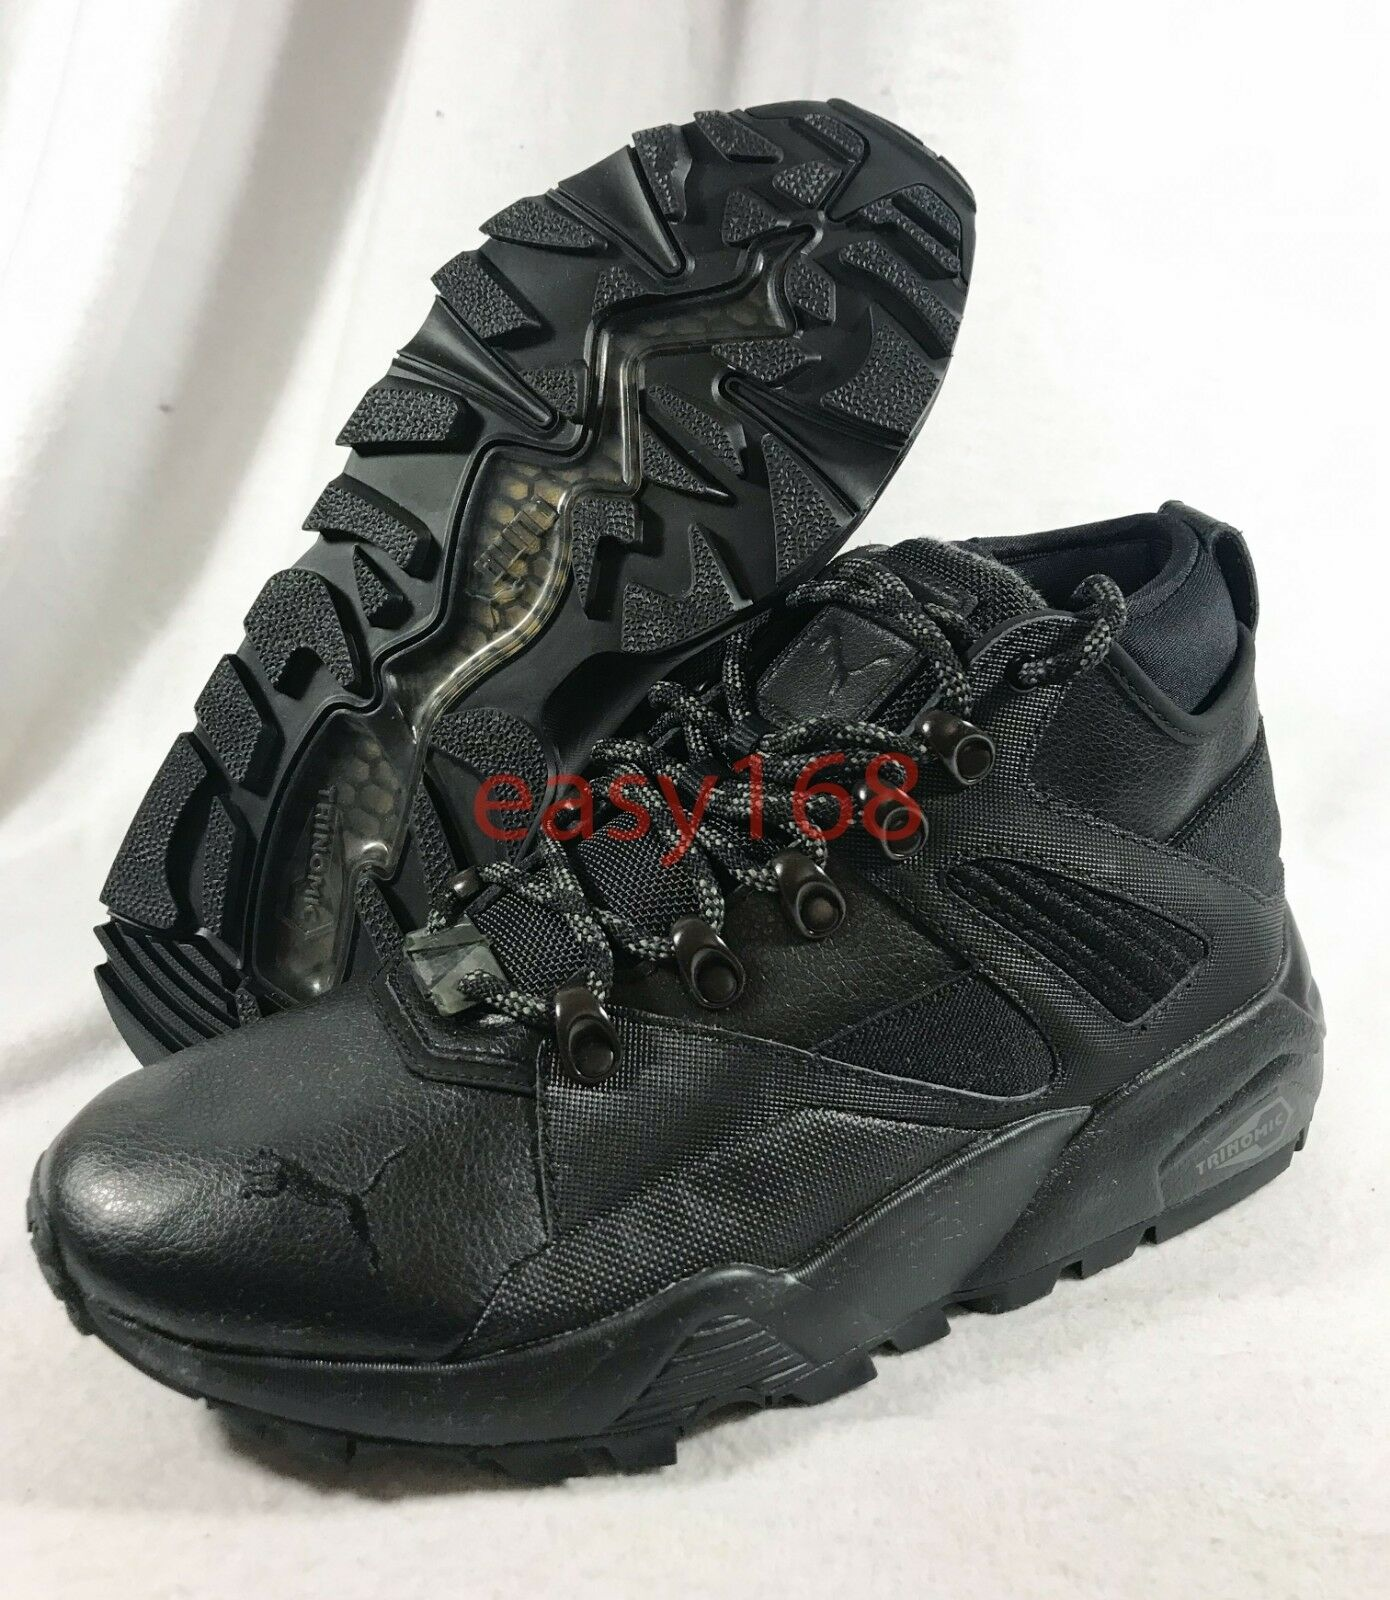 New Puma Blaze of Glory Boot Boot Boot Sz 8.5 Mens 363283 Trinomic Black Leather 40 Sock a22f2a